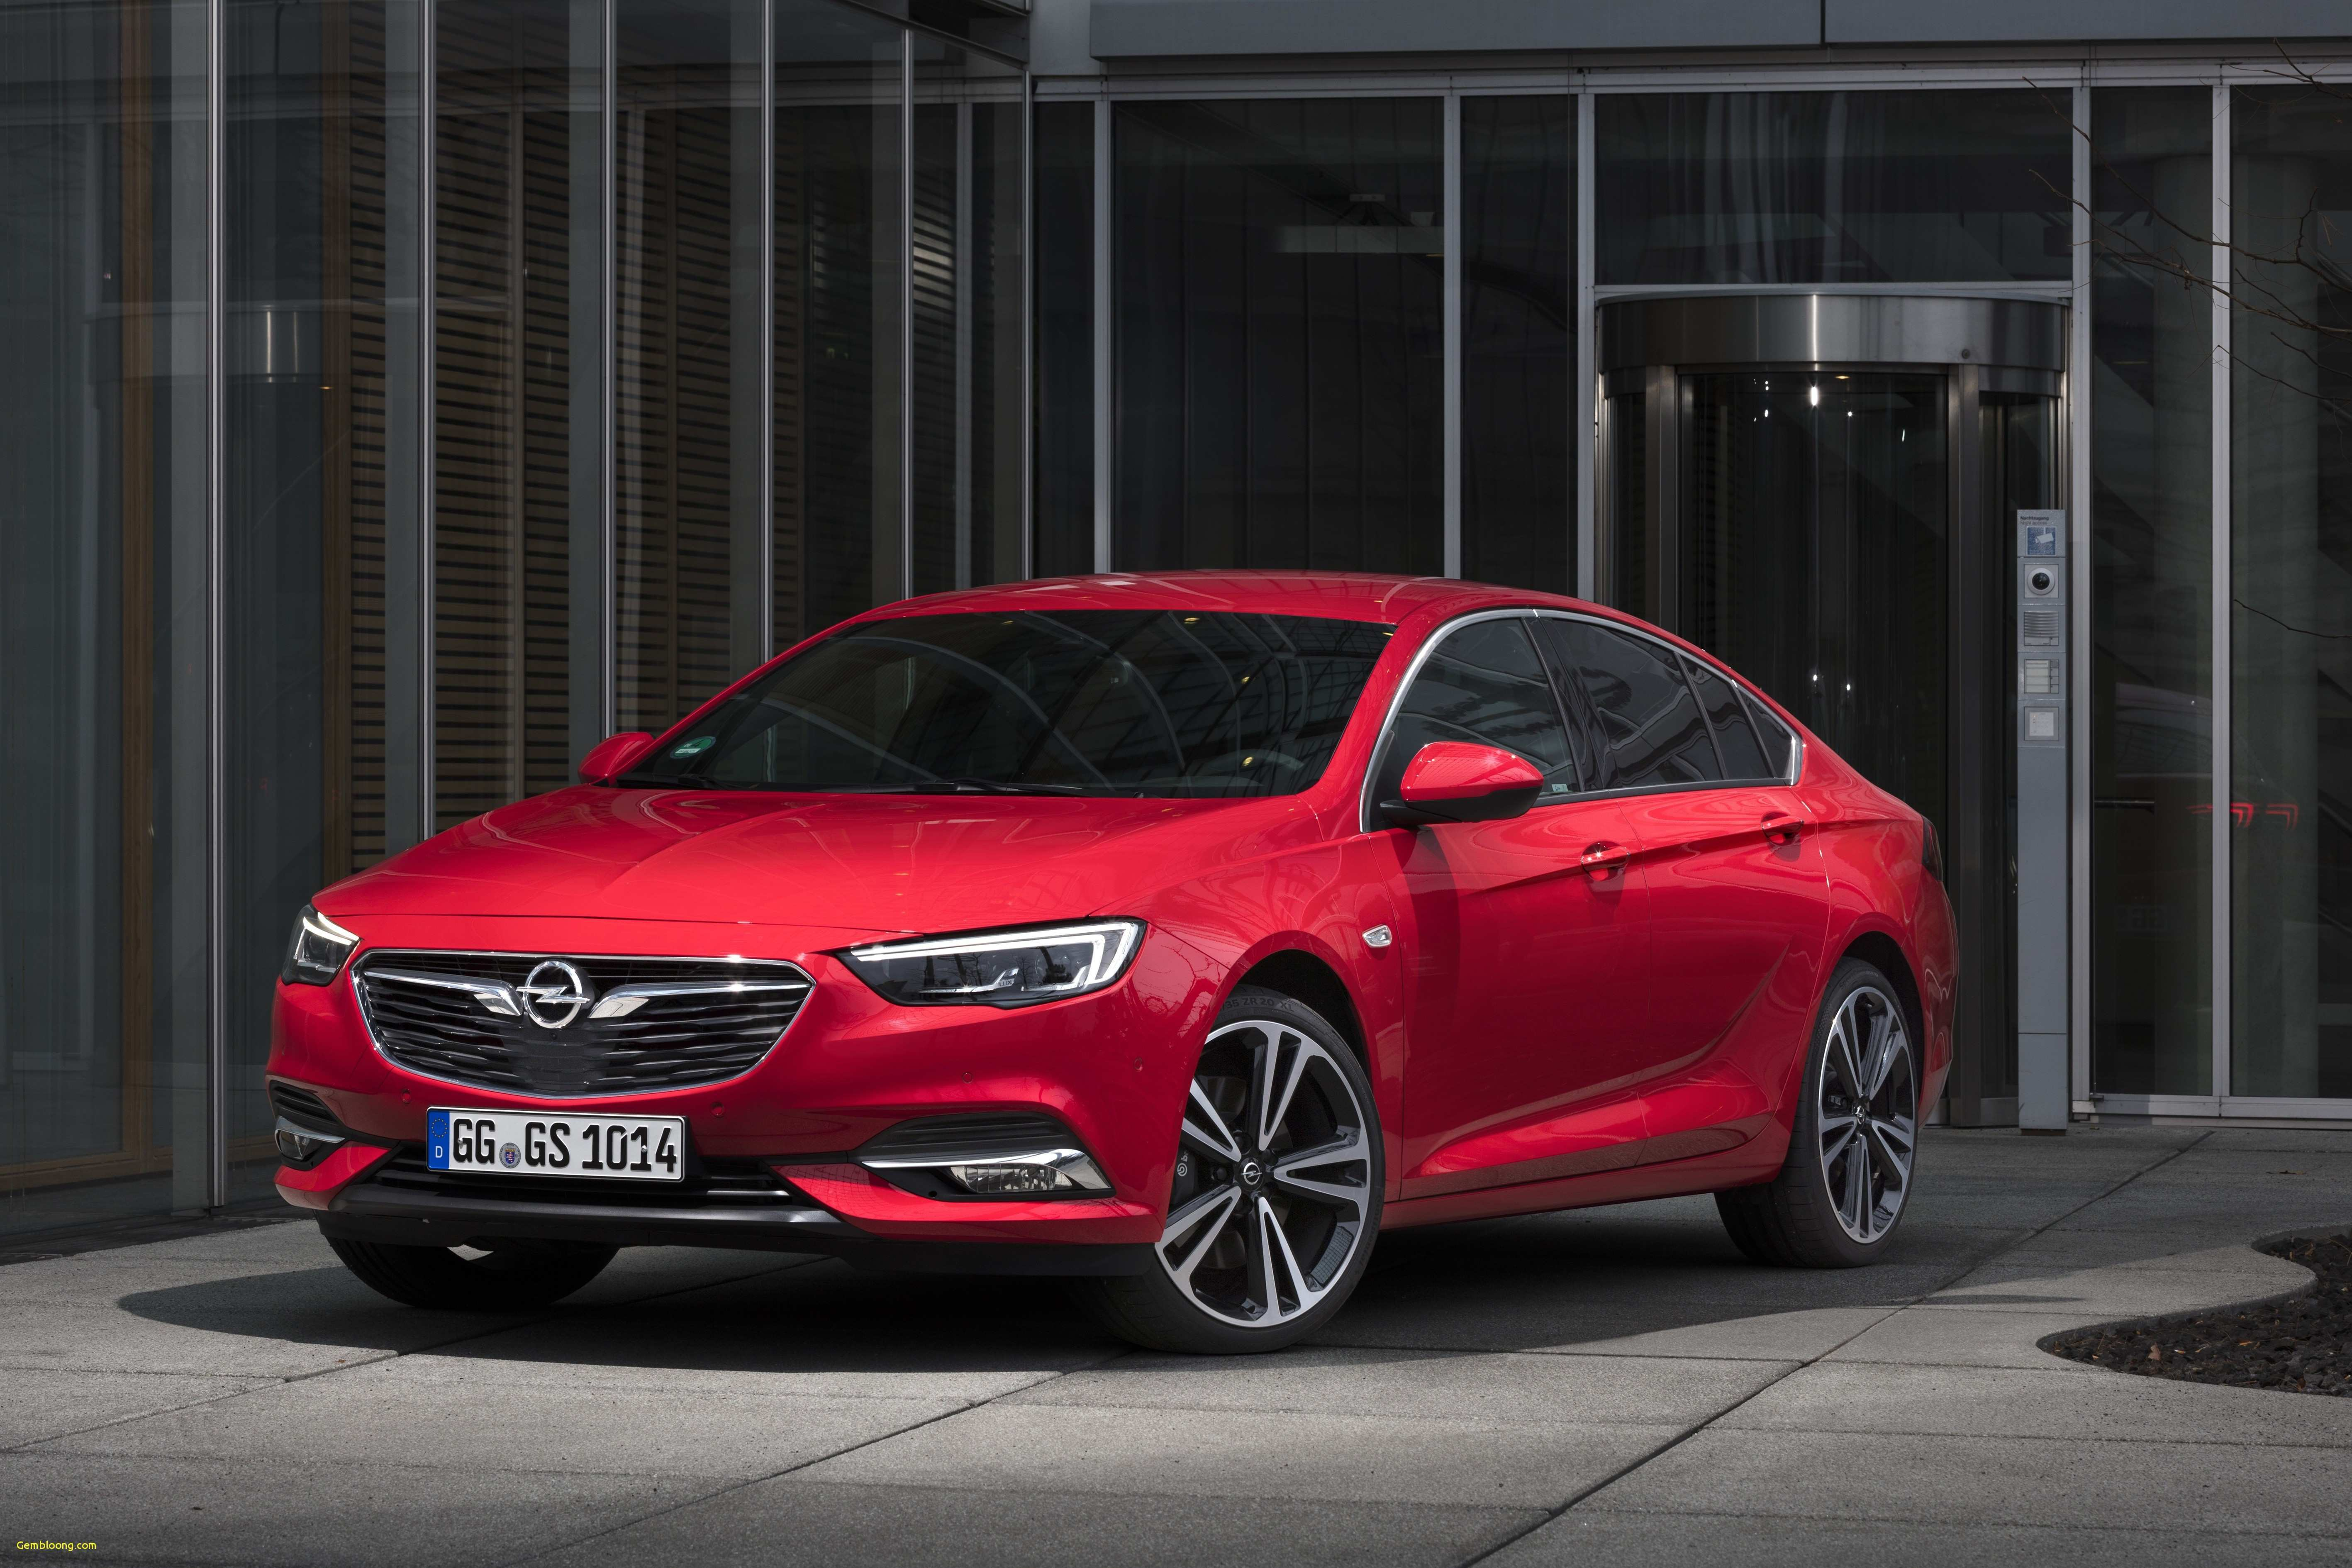 45 All New Opel Opc 2020 Release Date with Opel Opc 2020